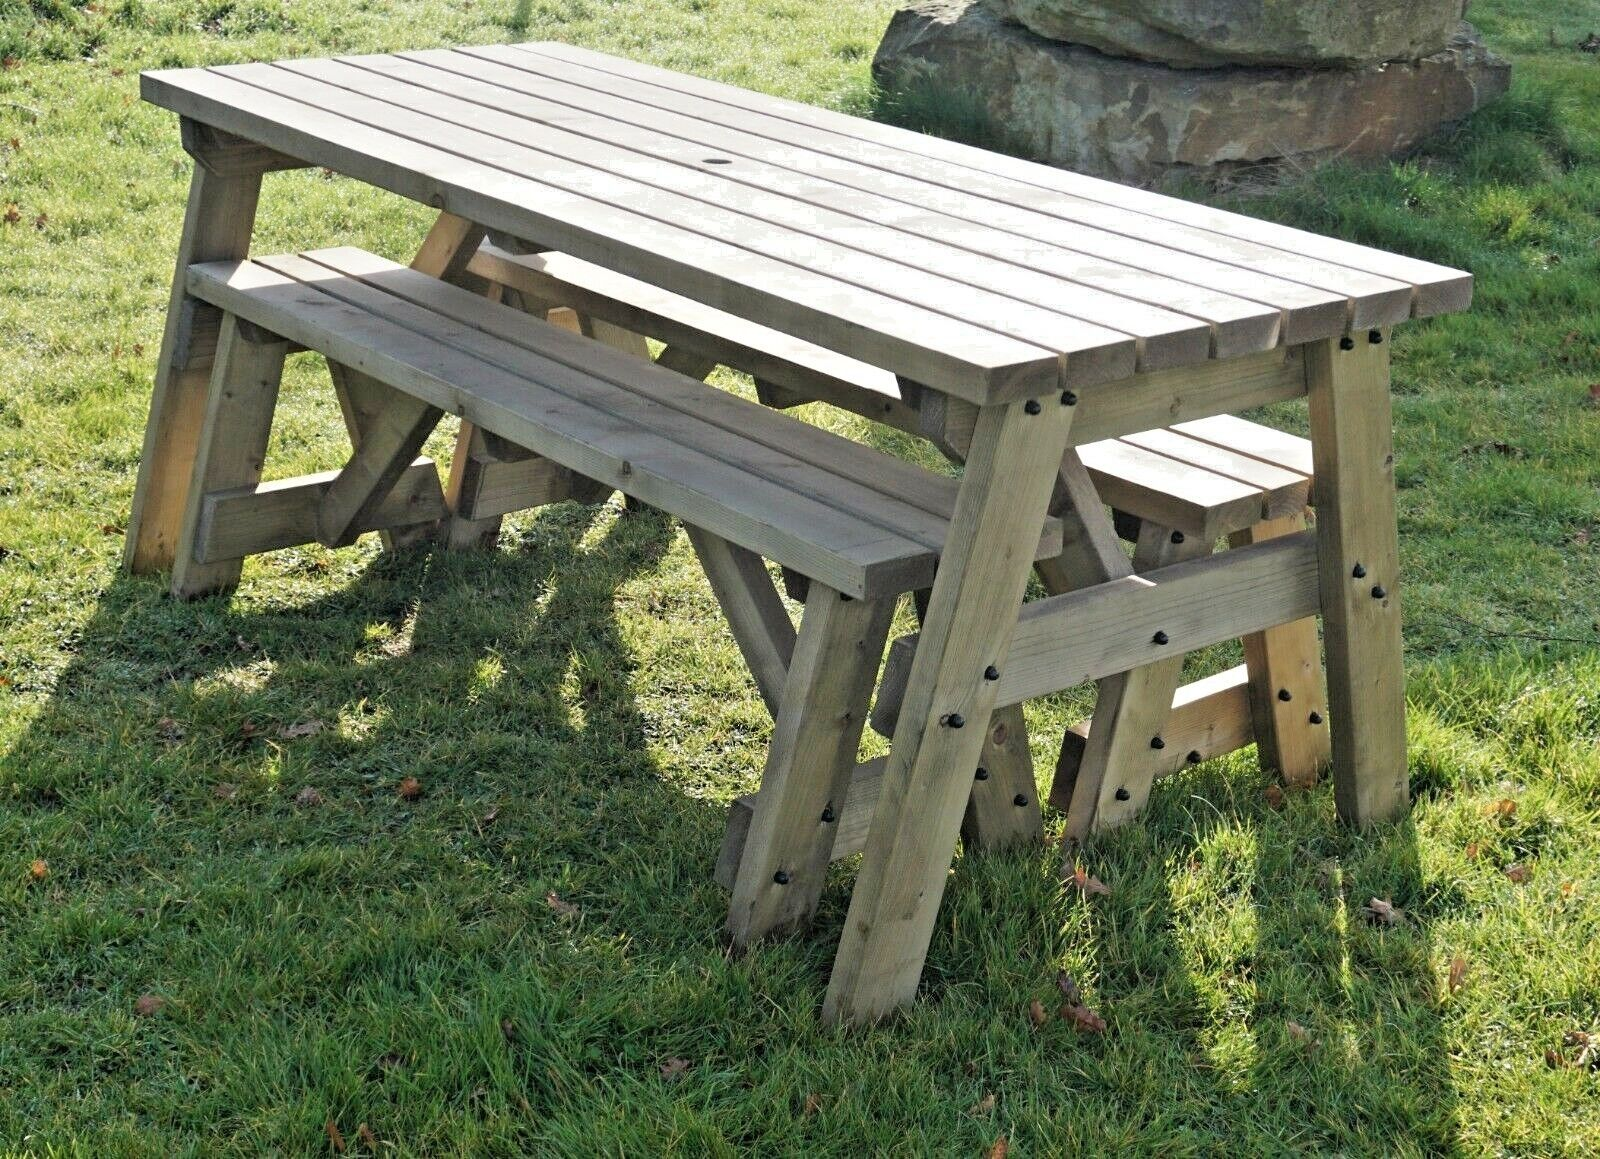 Details about V-TORIA Compact Picnic Table Bench Set - 8FT to 8FT - Garden  Furniture